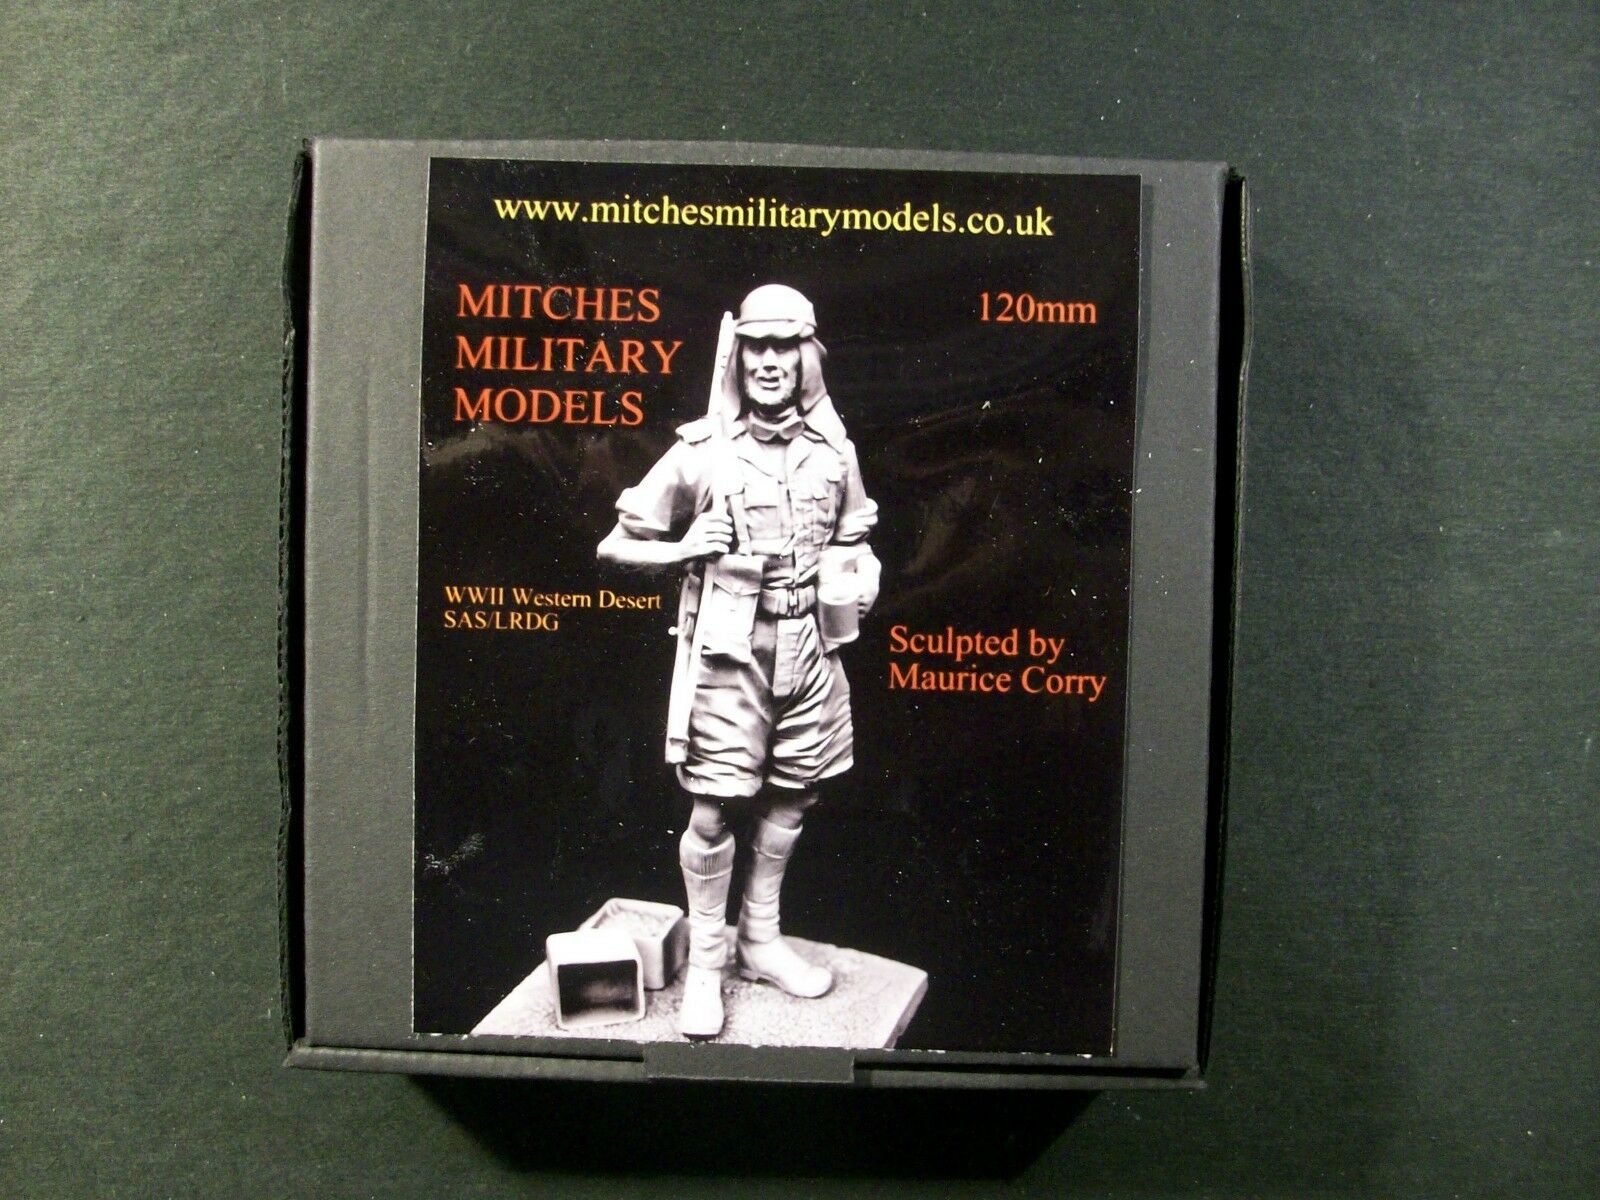 Mitches Military Models - SAS LRDG WWII No. Africa - 120mm  LRDG